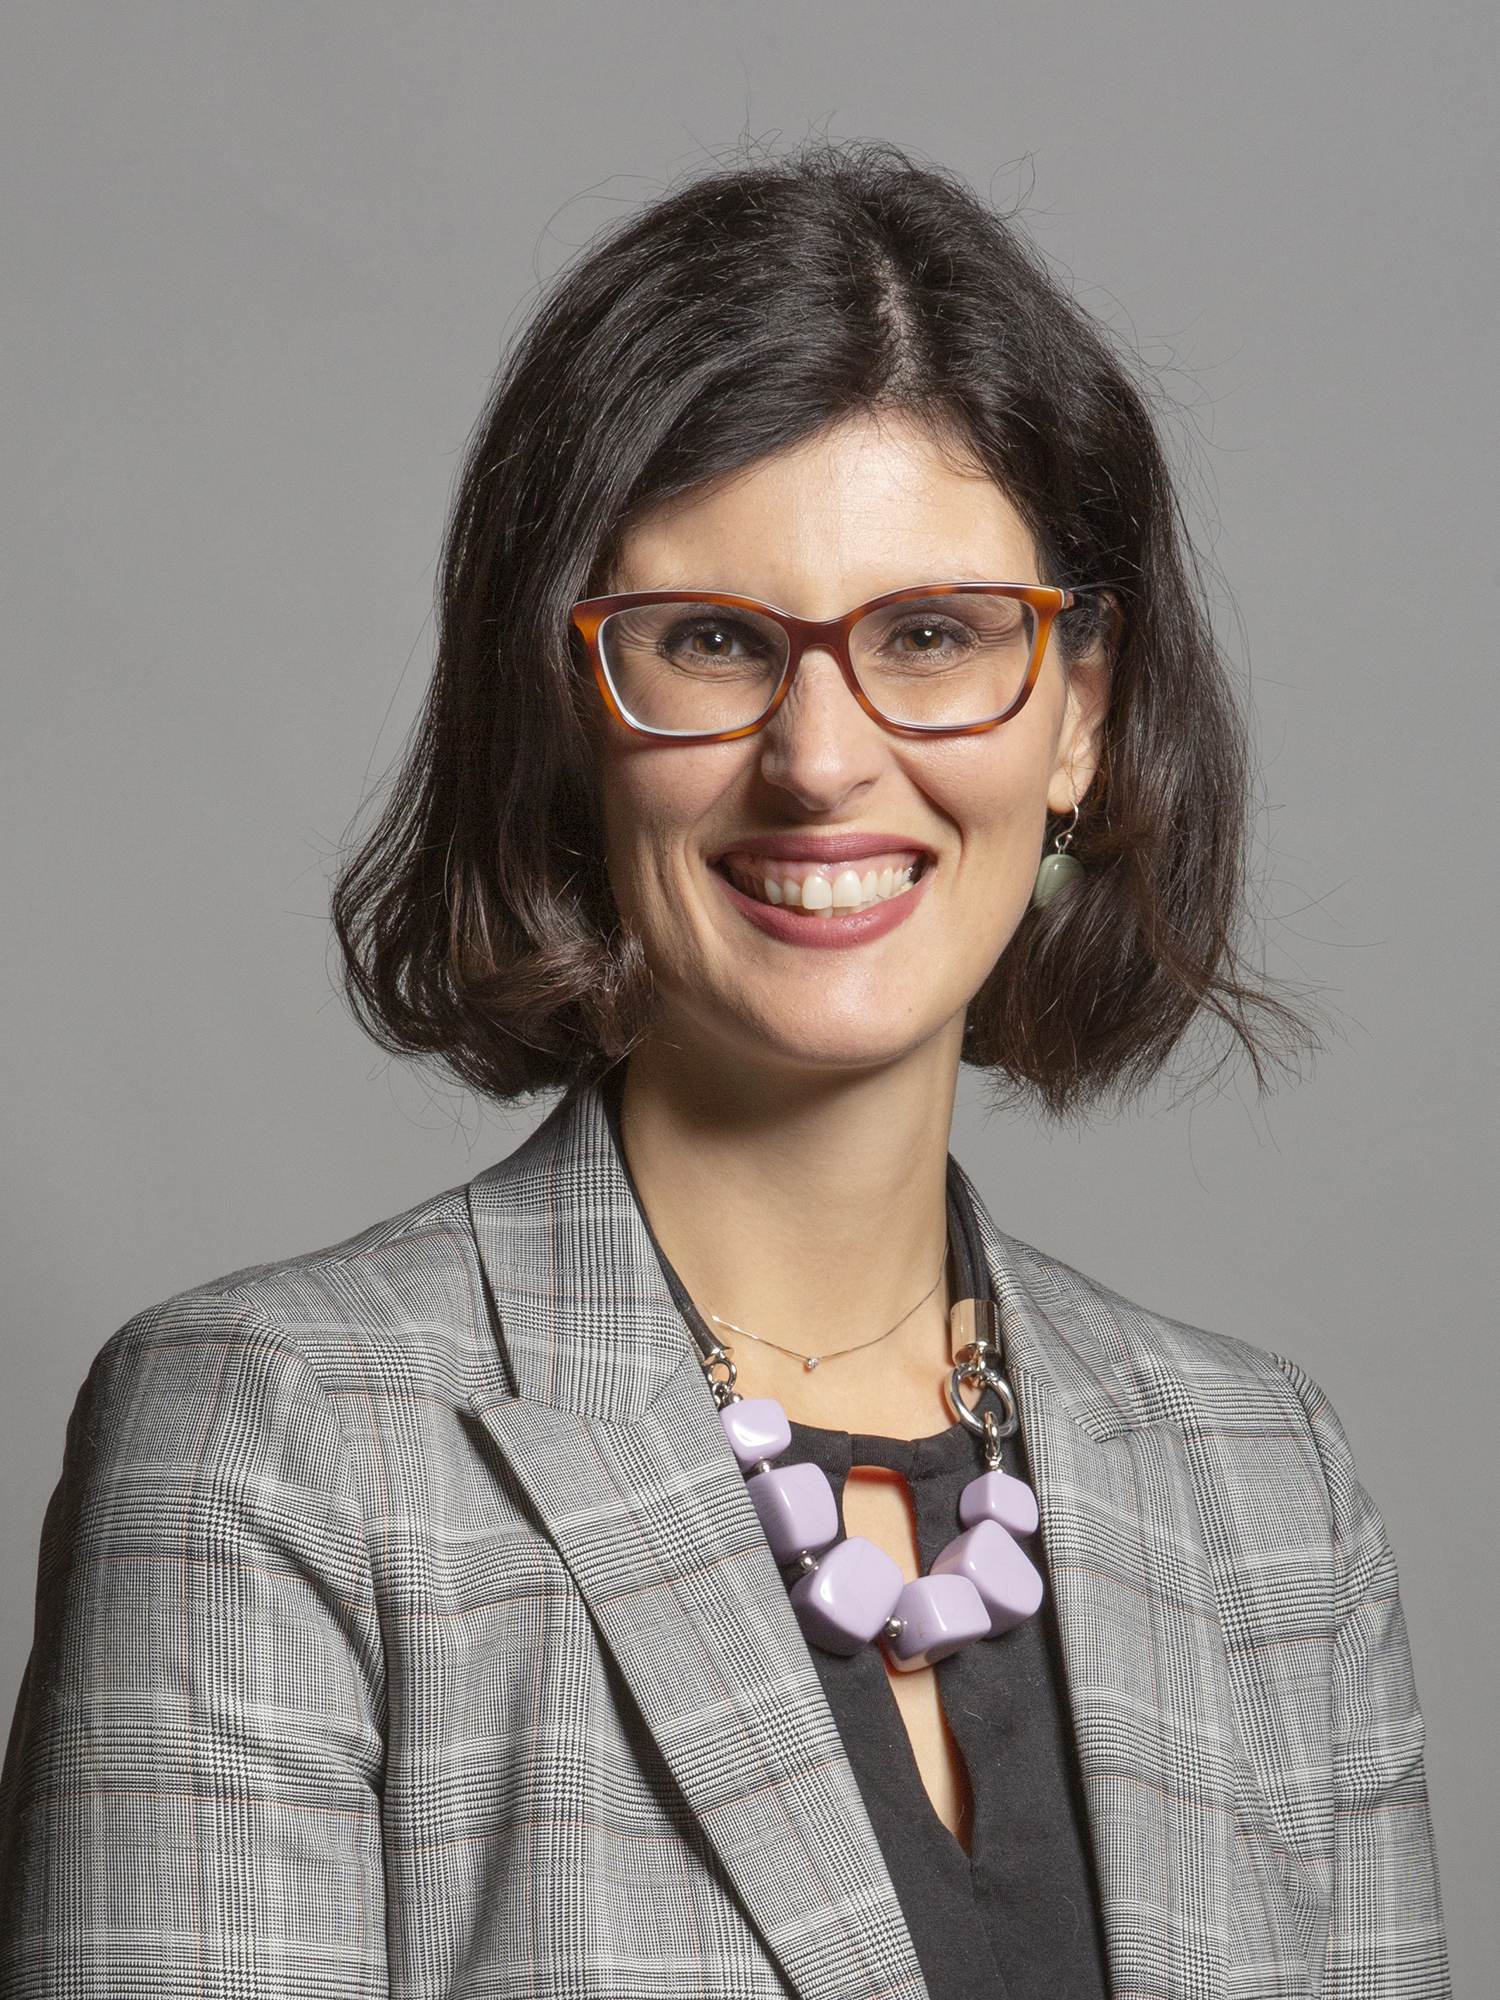 Liberal Democrats MP Layla Moran has been nominated for Politician of the Year at the PinkNews Awards 2020